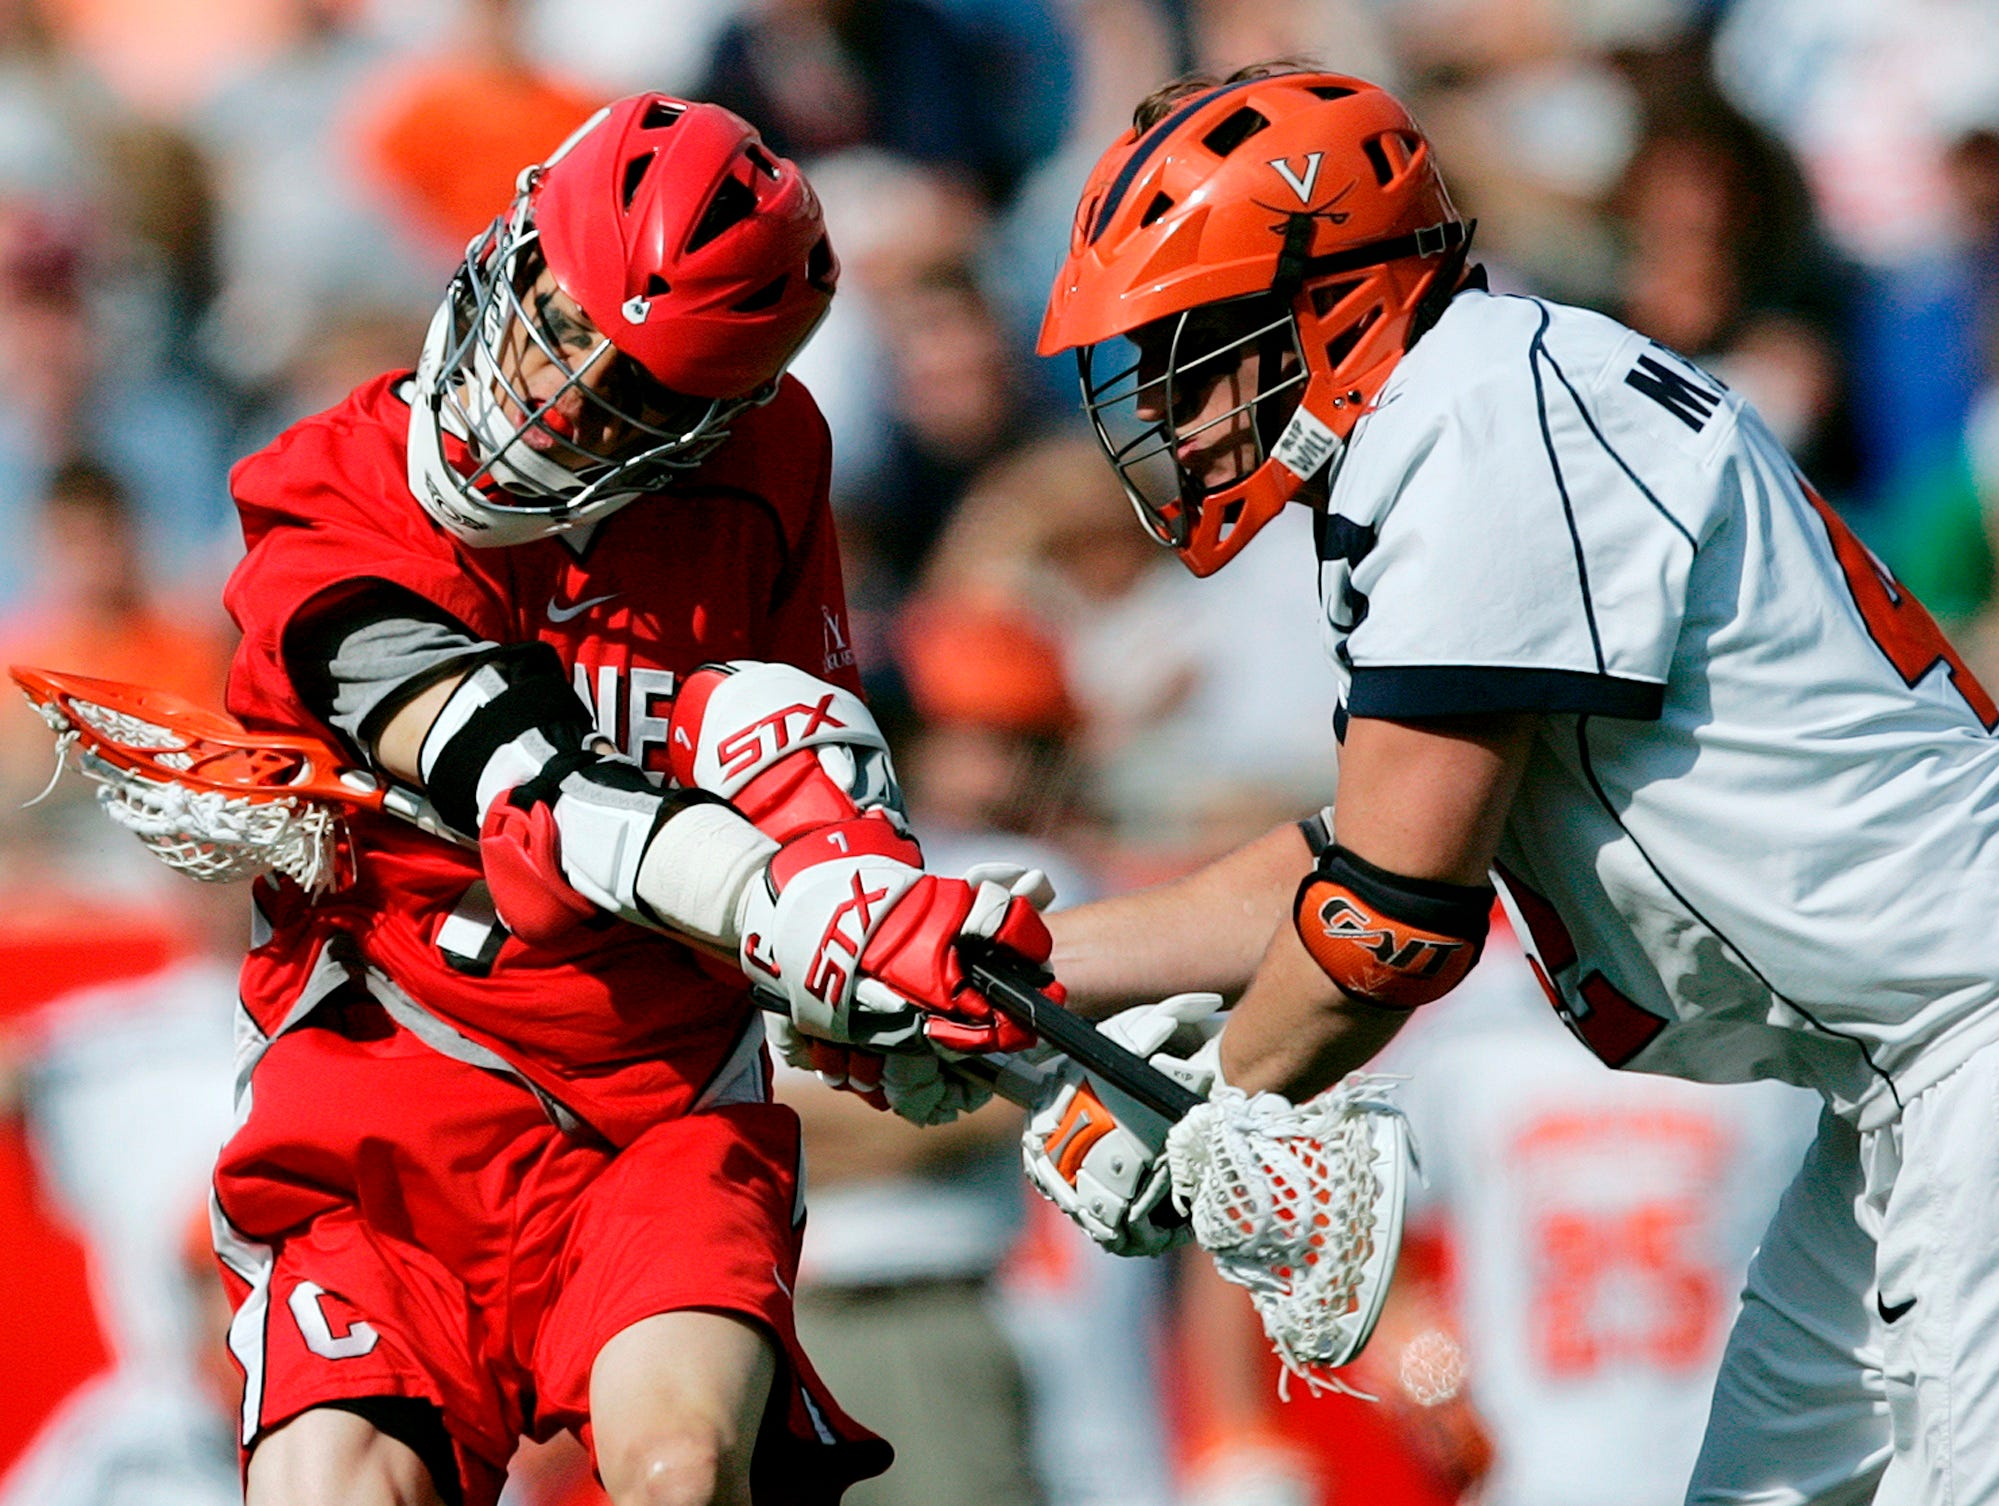 Virginia's Max Pomper, right, breaks up a shot by Cornell's David Lau in the third quarter of an NCAA Division 1 Men's lacrosse  semifinal game in Foxborough, Mass., Saturday, May 23, 2009. Cornell won 15-6.